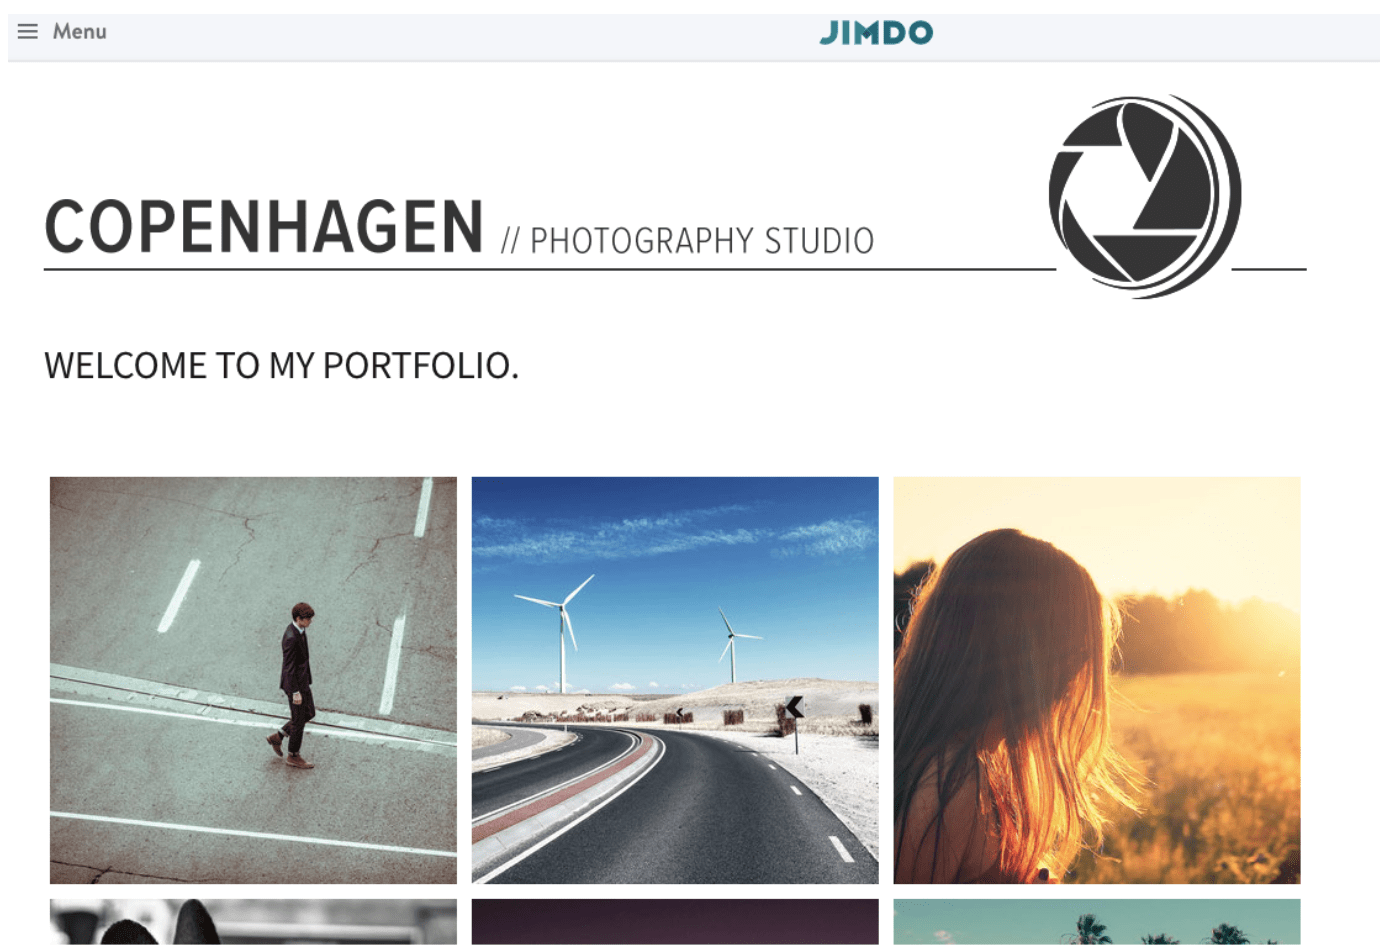 Jimdo template for photographers